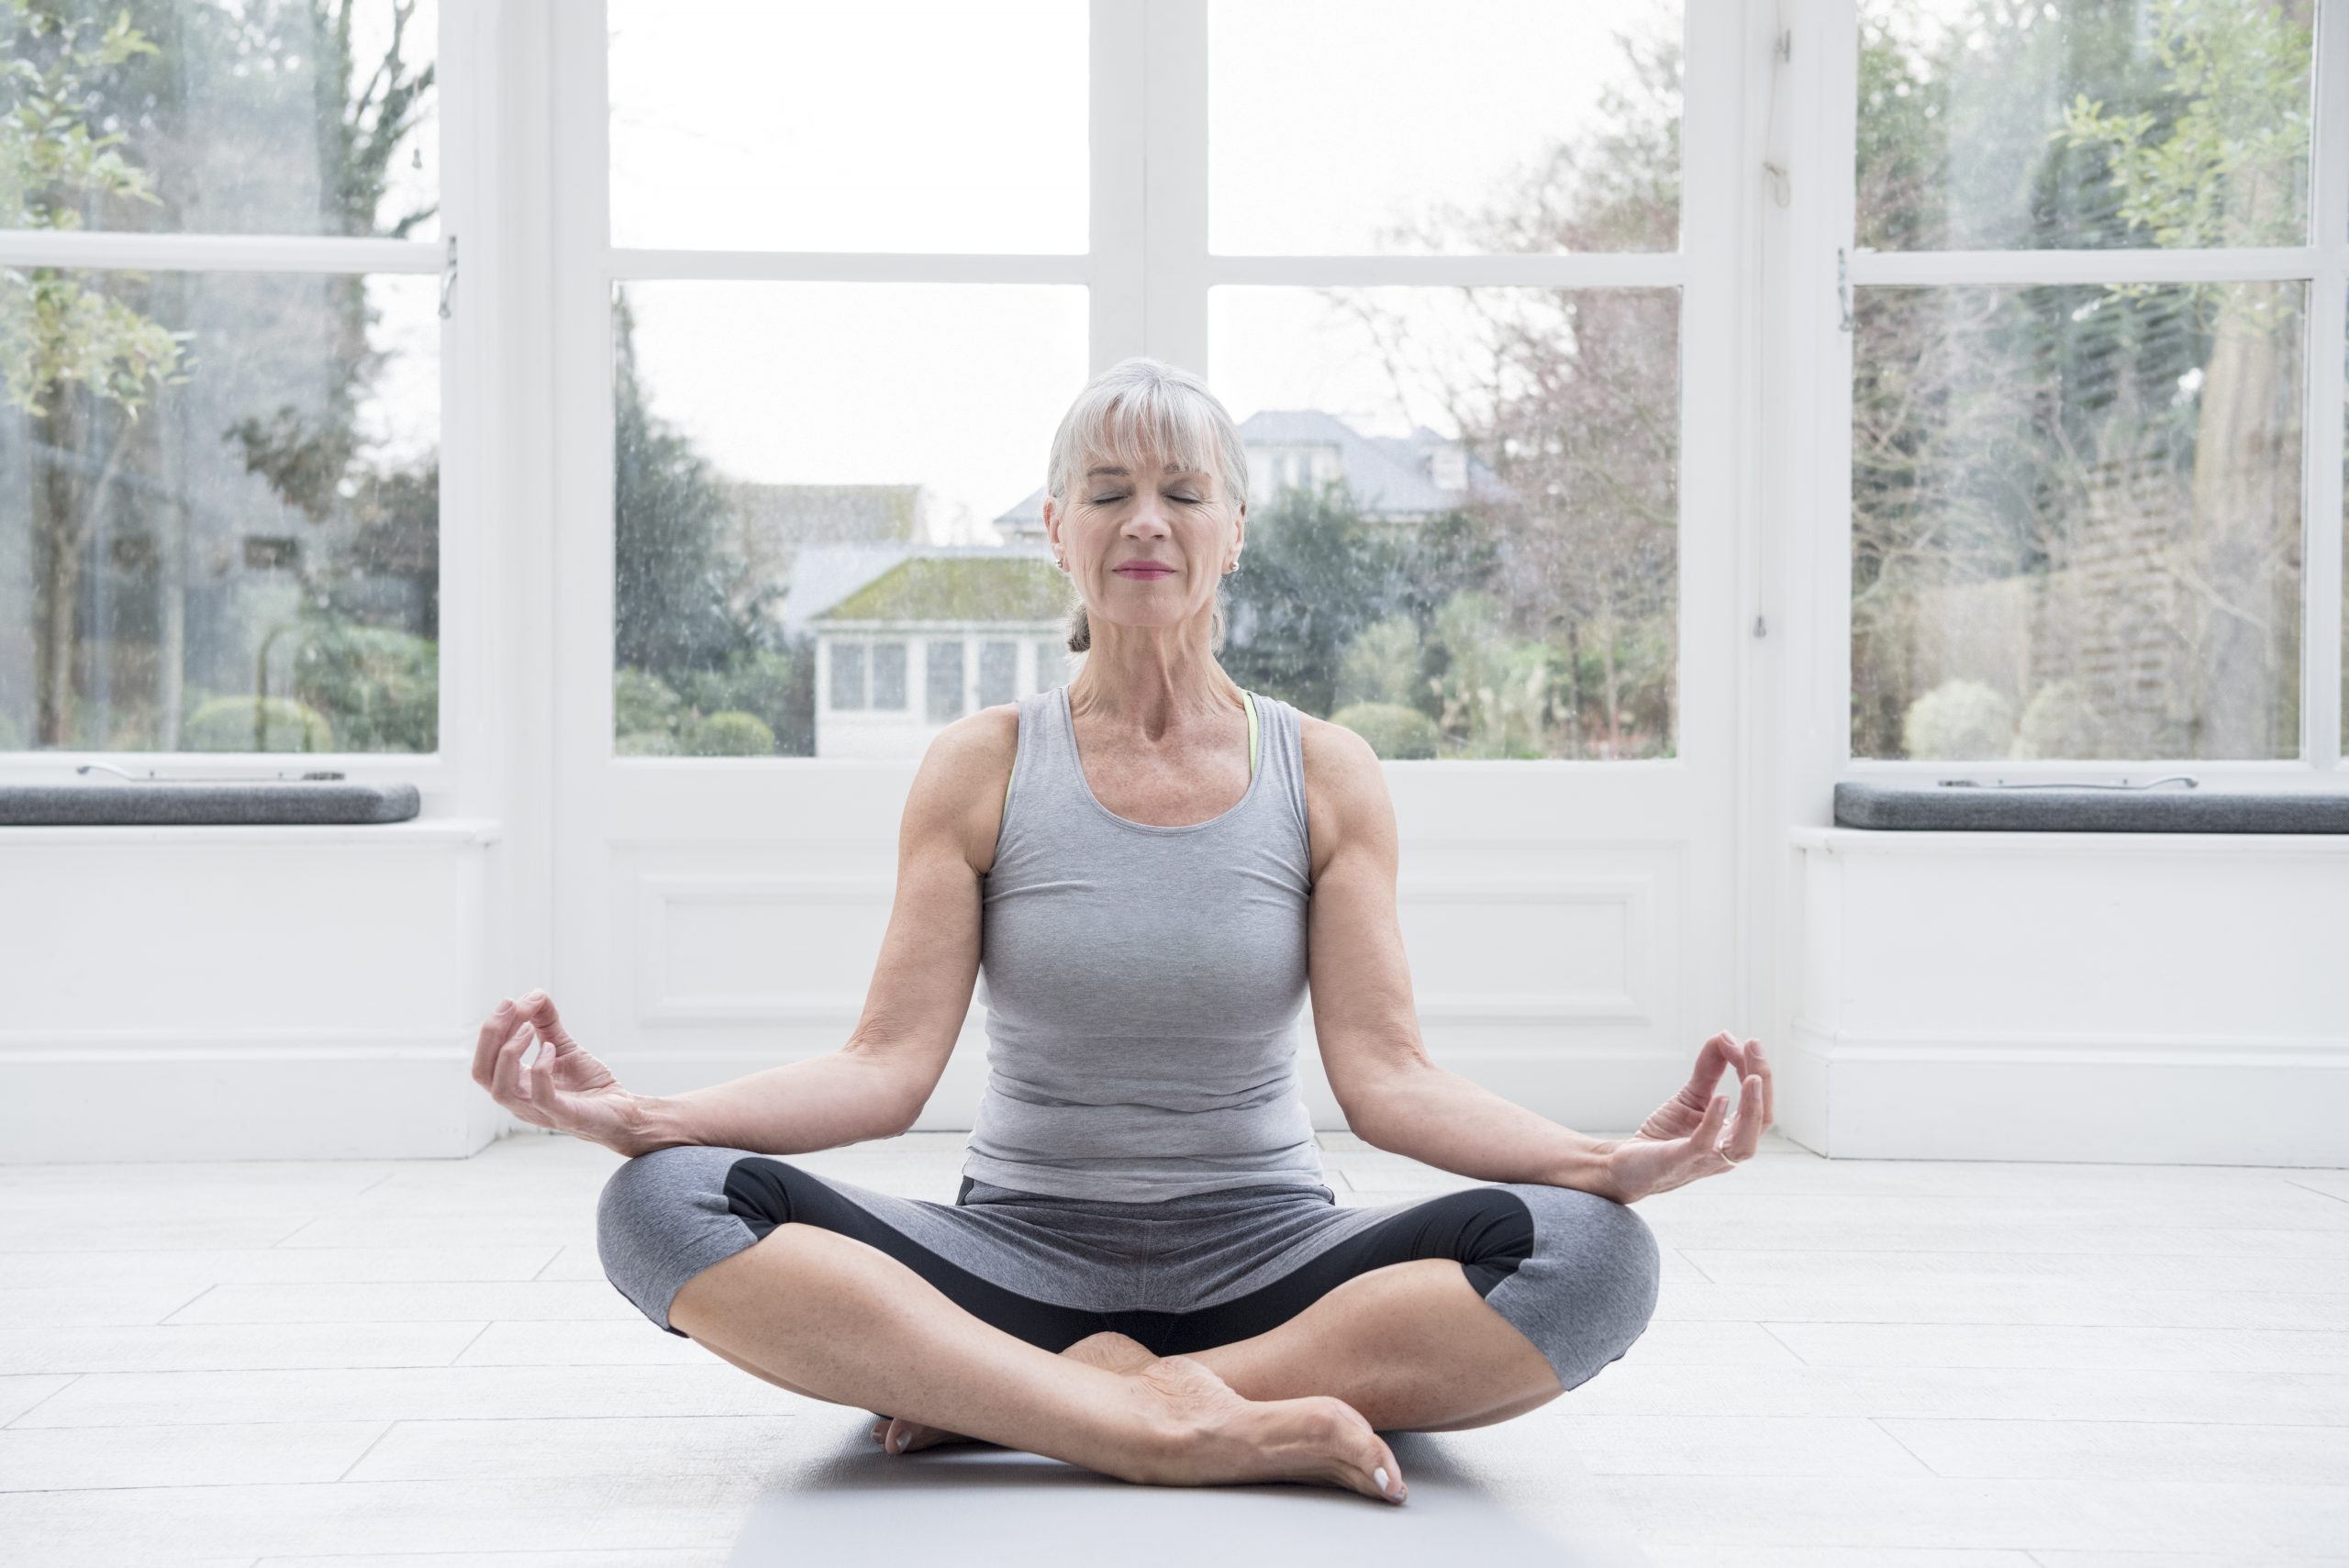 Yoga improves mental and physical health over 60s